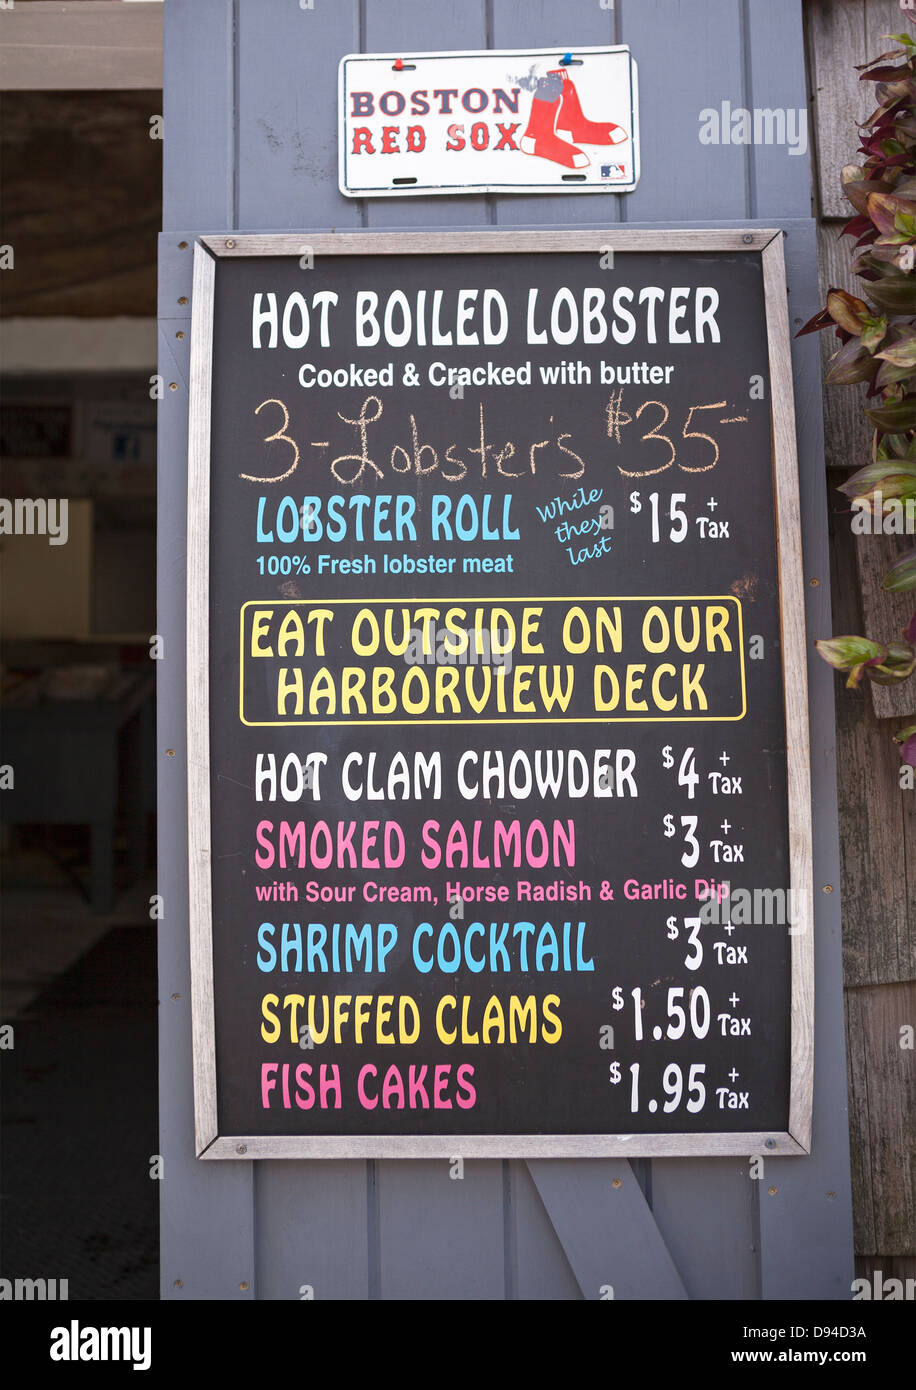 A menu at a seafood shanty lists the local specialties. - Stock Image